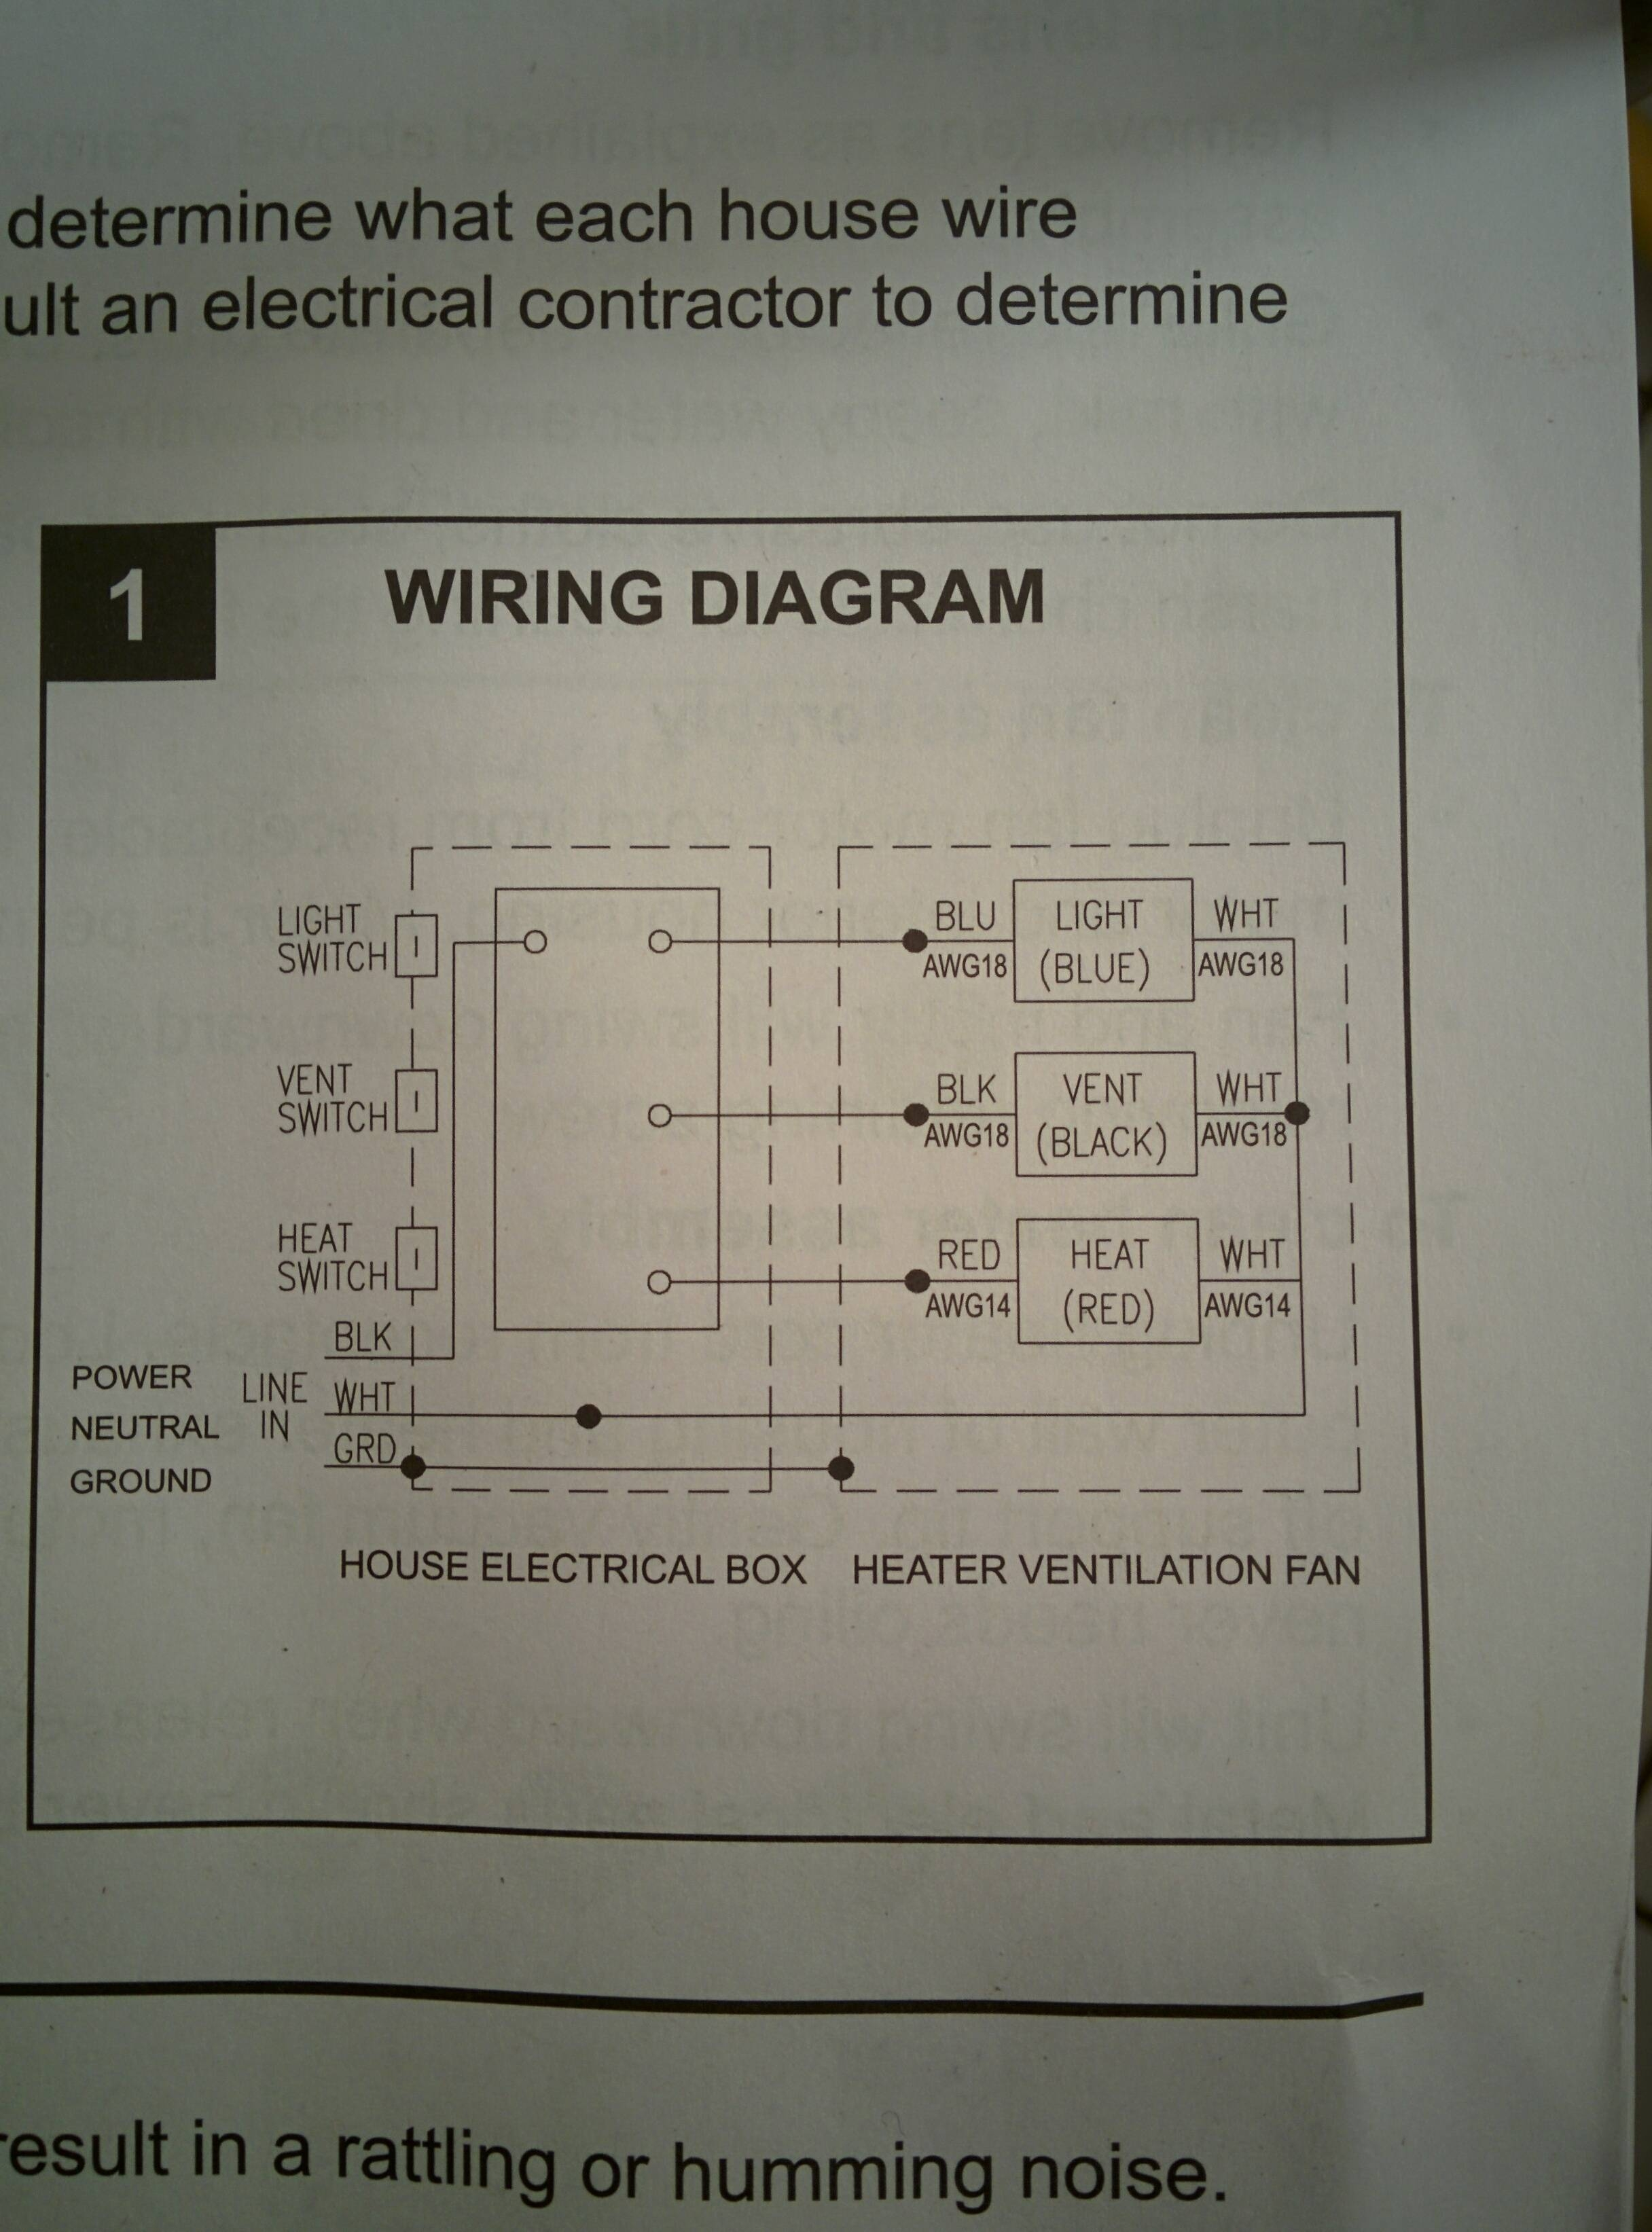 How To Wire A Bathroom Exhaust Fan With Light And Heater : bathroom, exhaust, light, heater, Electrical, Wiring, Bathroom, Exhaust, Heater, Layjao